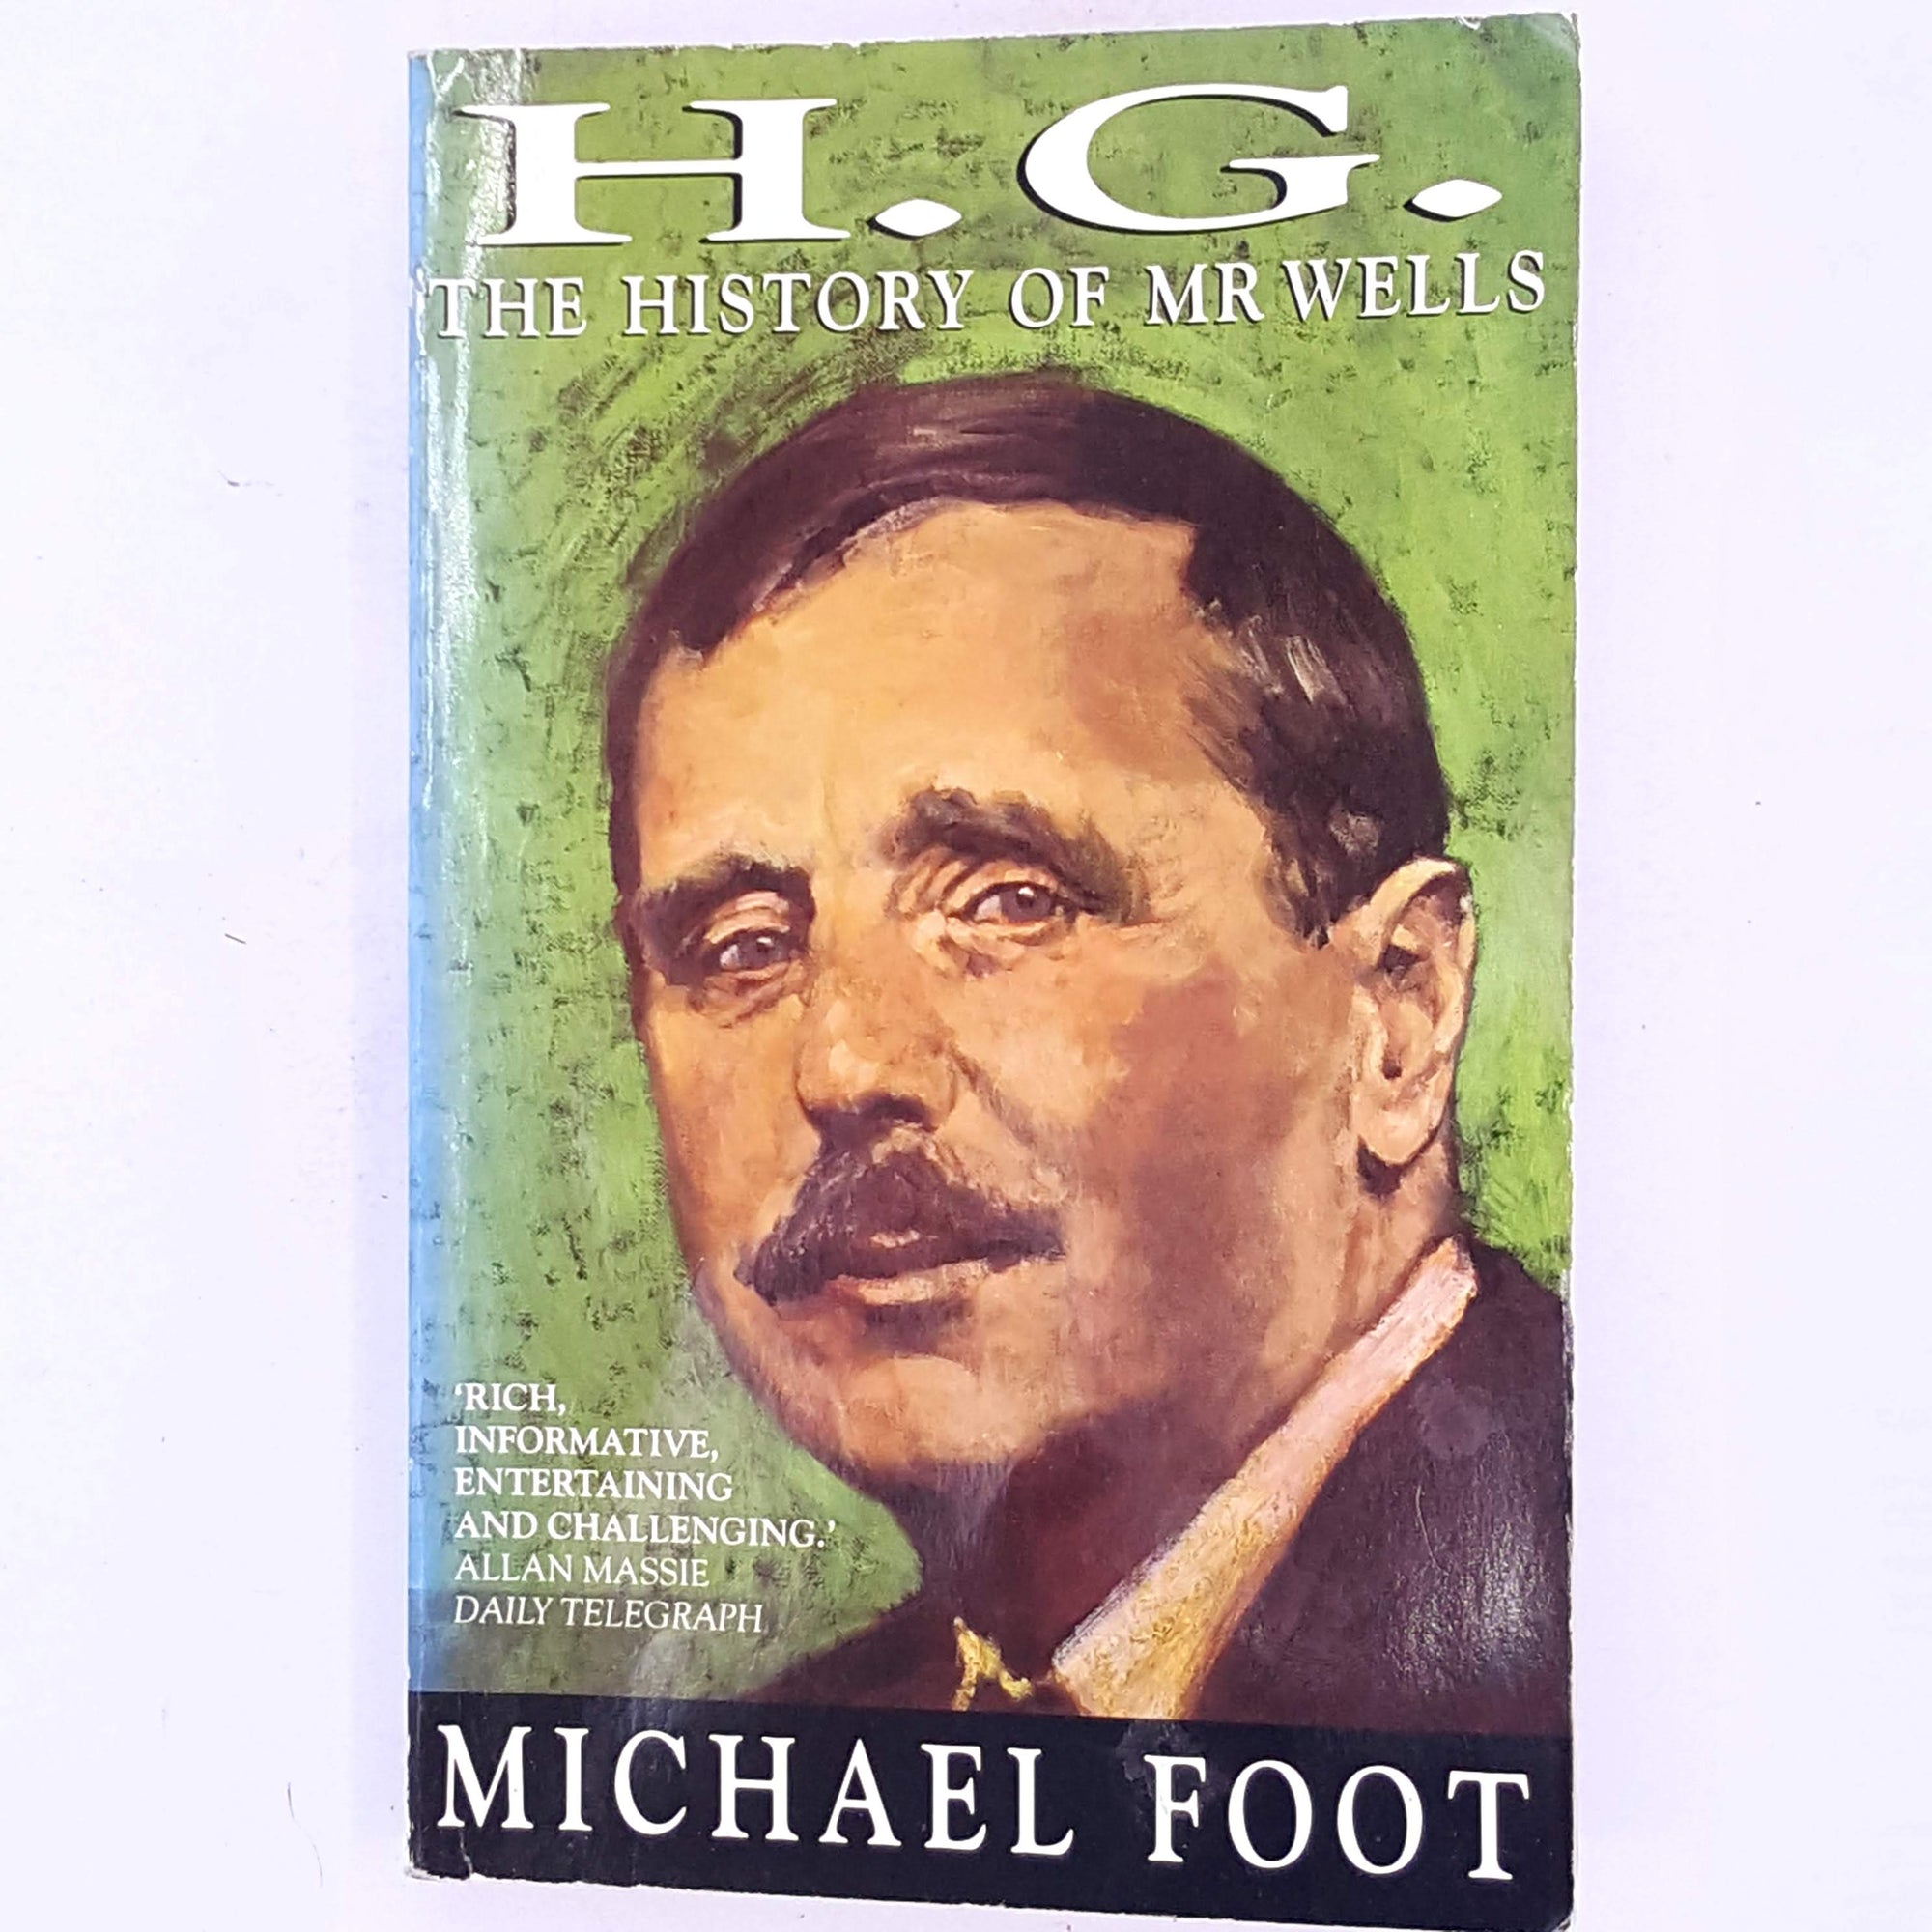 country-house-library-biography-H.G.-The-History-Of-Mr-Wells-Michael-Foot-classic-vintage-antique-old-books-thrift-decorative-patterned-